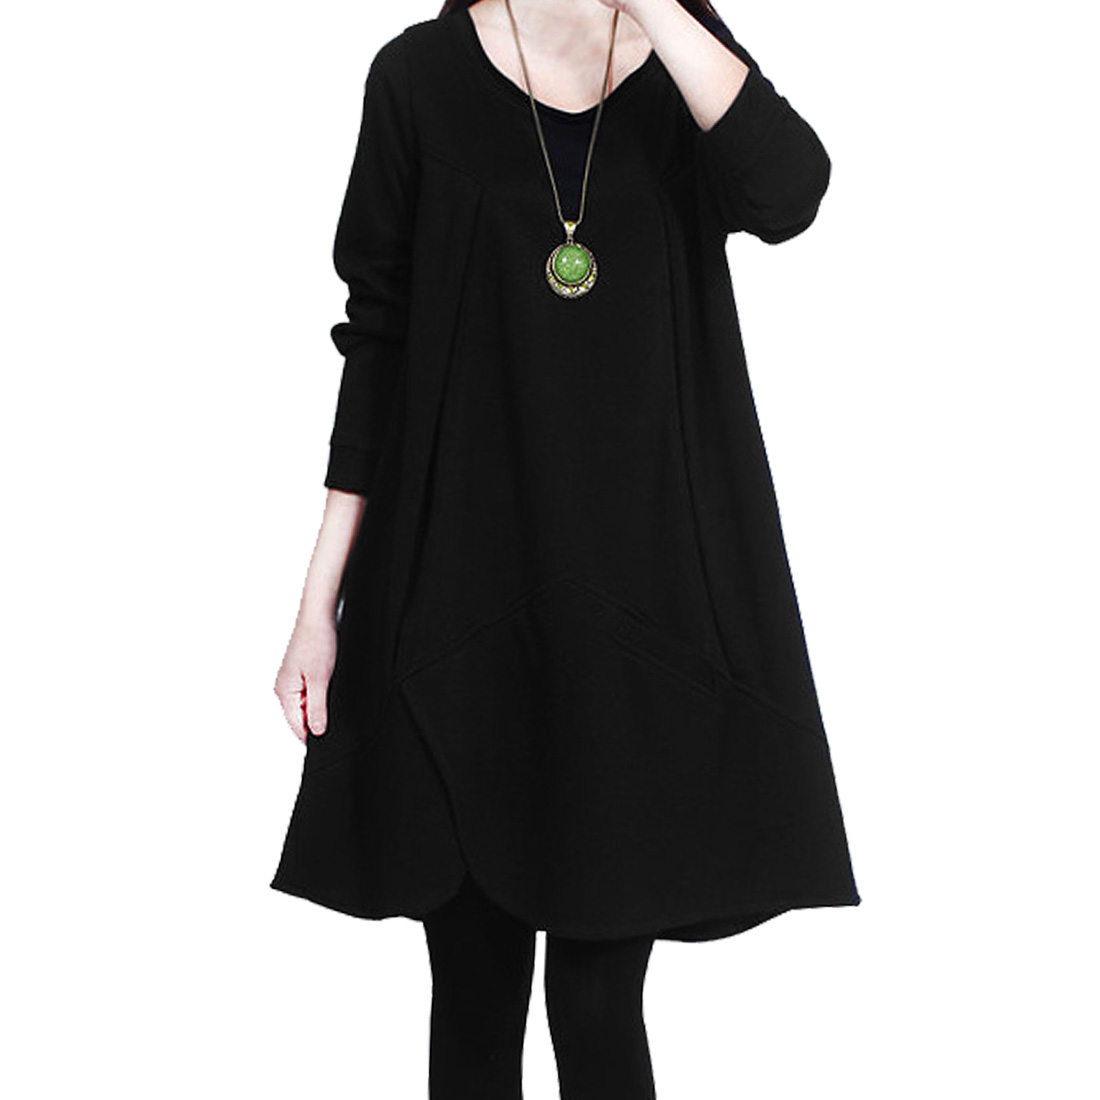 Women Scoop Neck Long Sleeve Korean Style Knitted Loose Tunic Top Black S